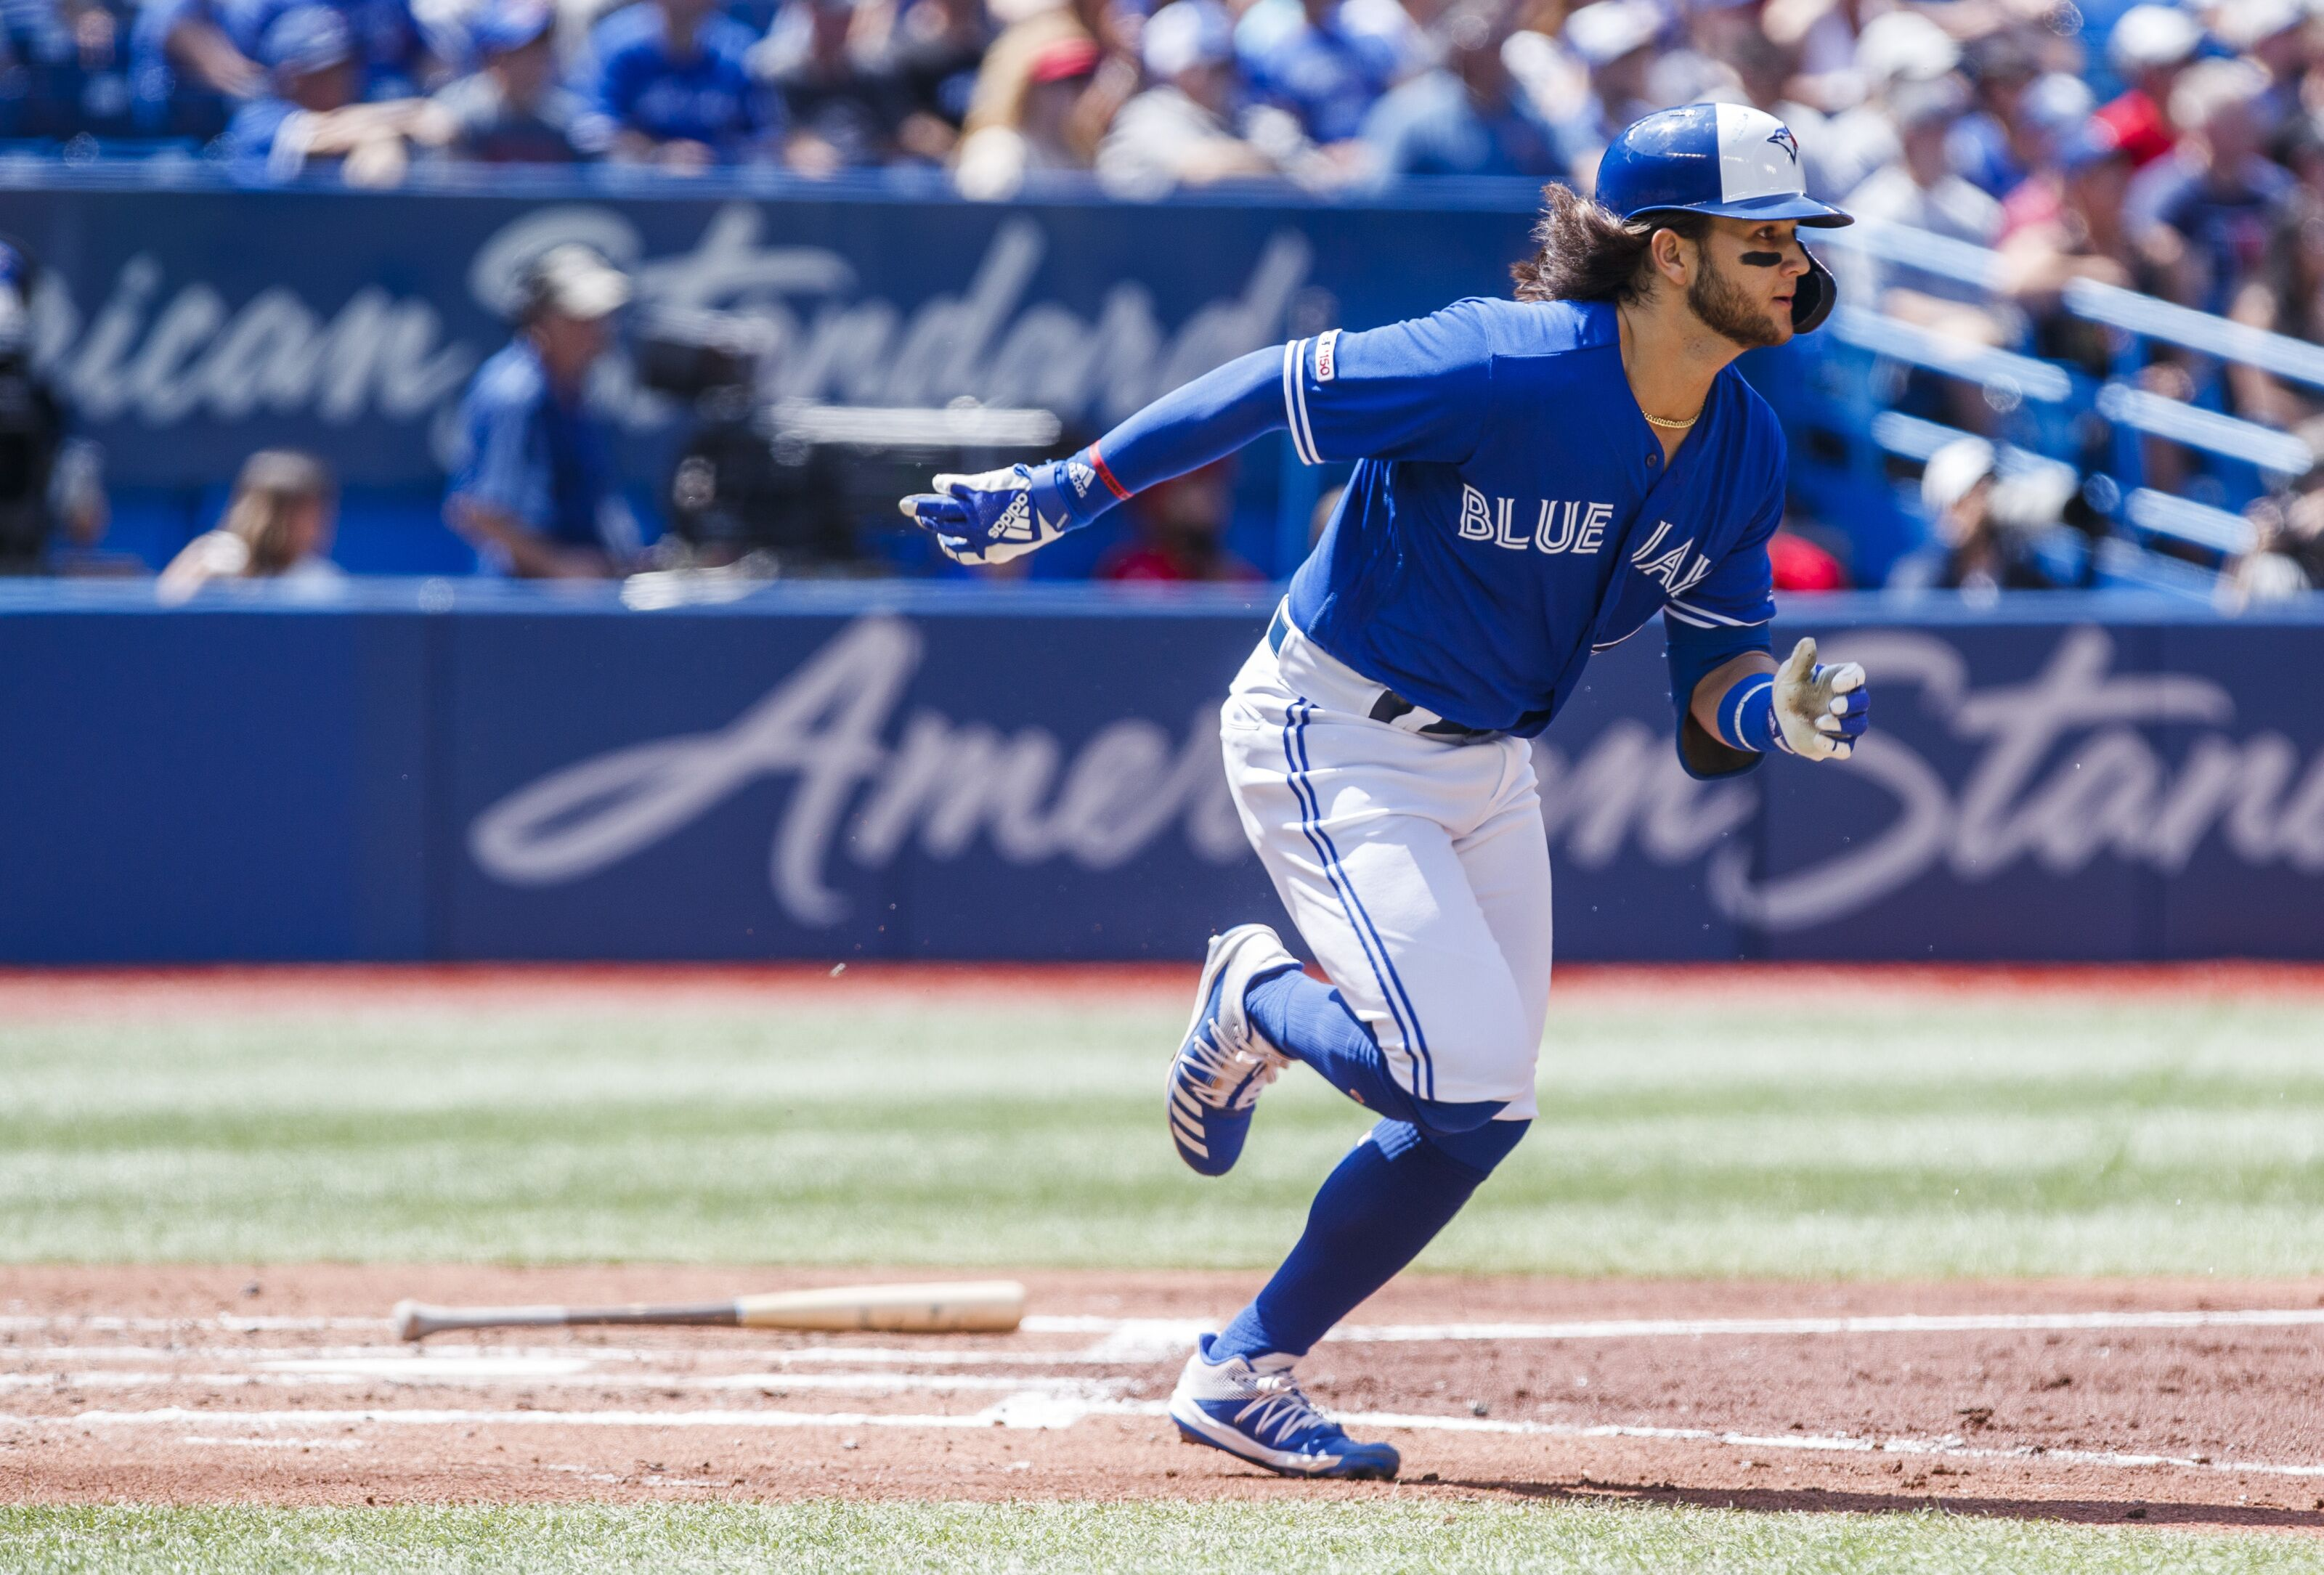 Blue Jays: Bo Bichette already passing Vlad Jr. in fWAr and more